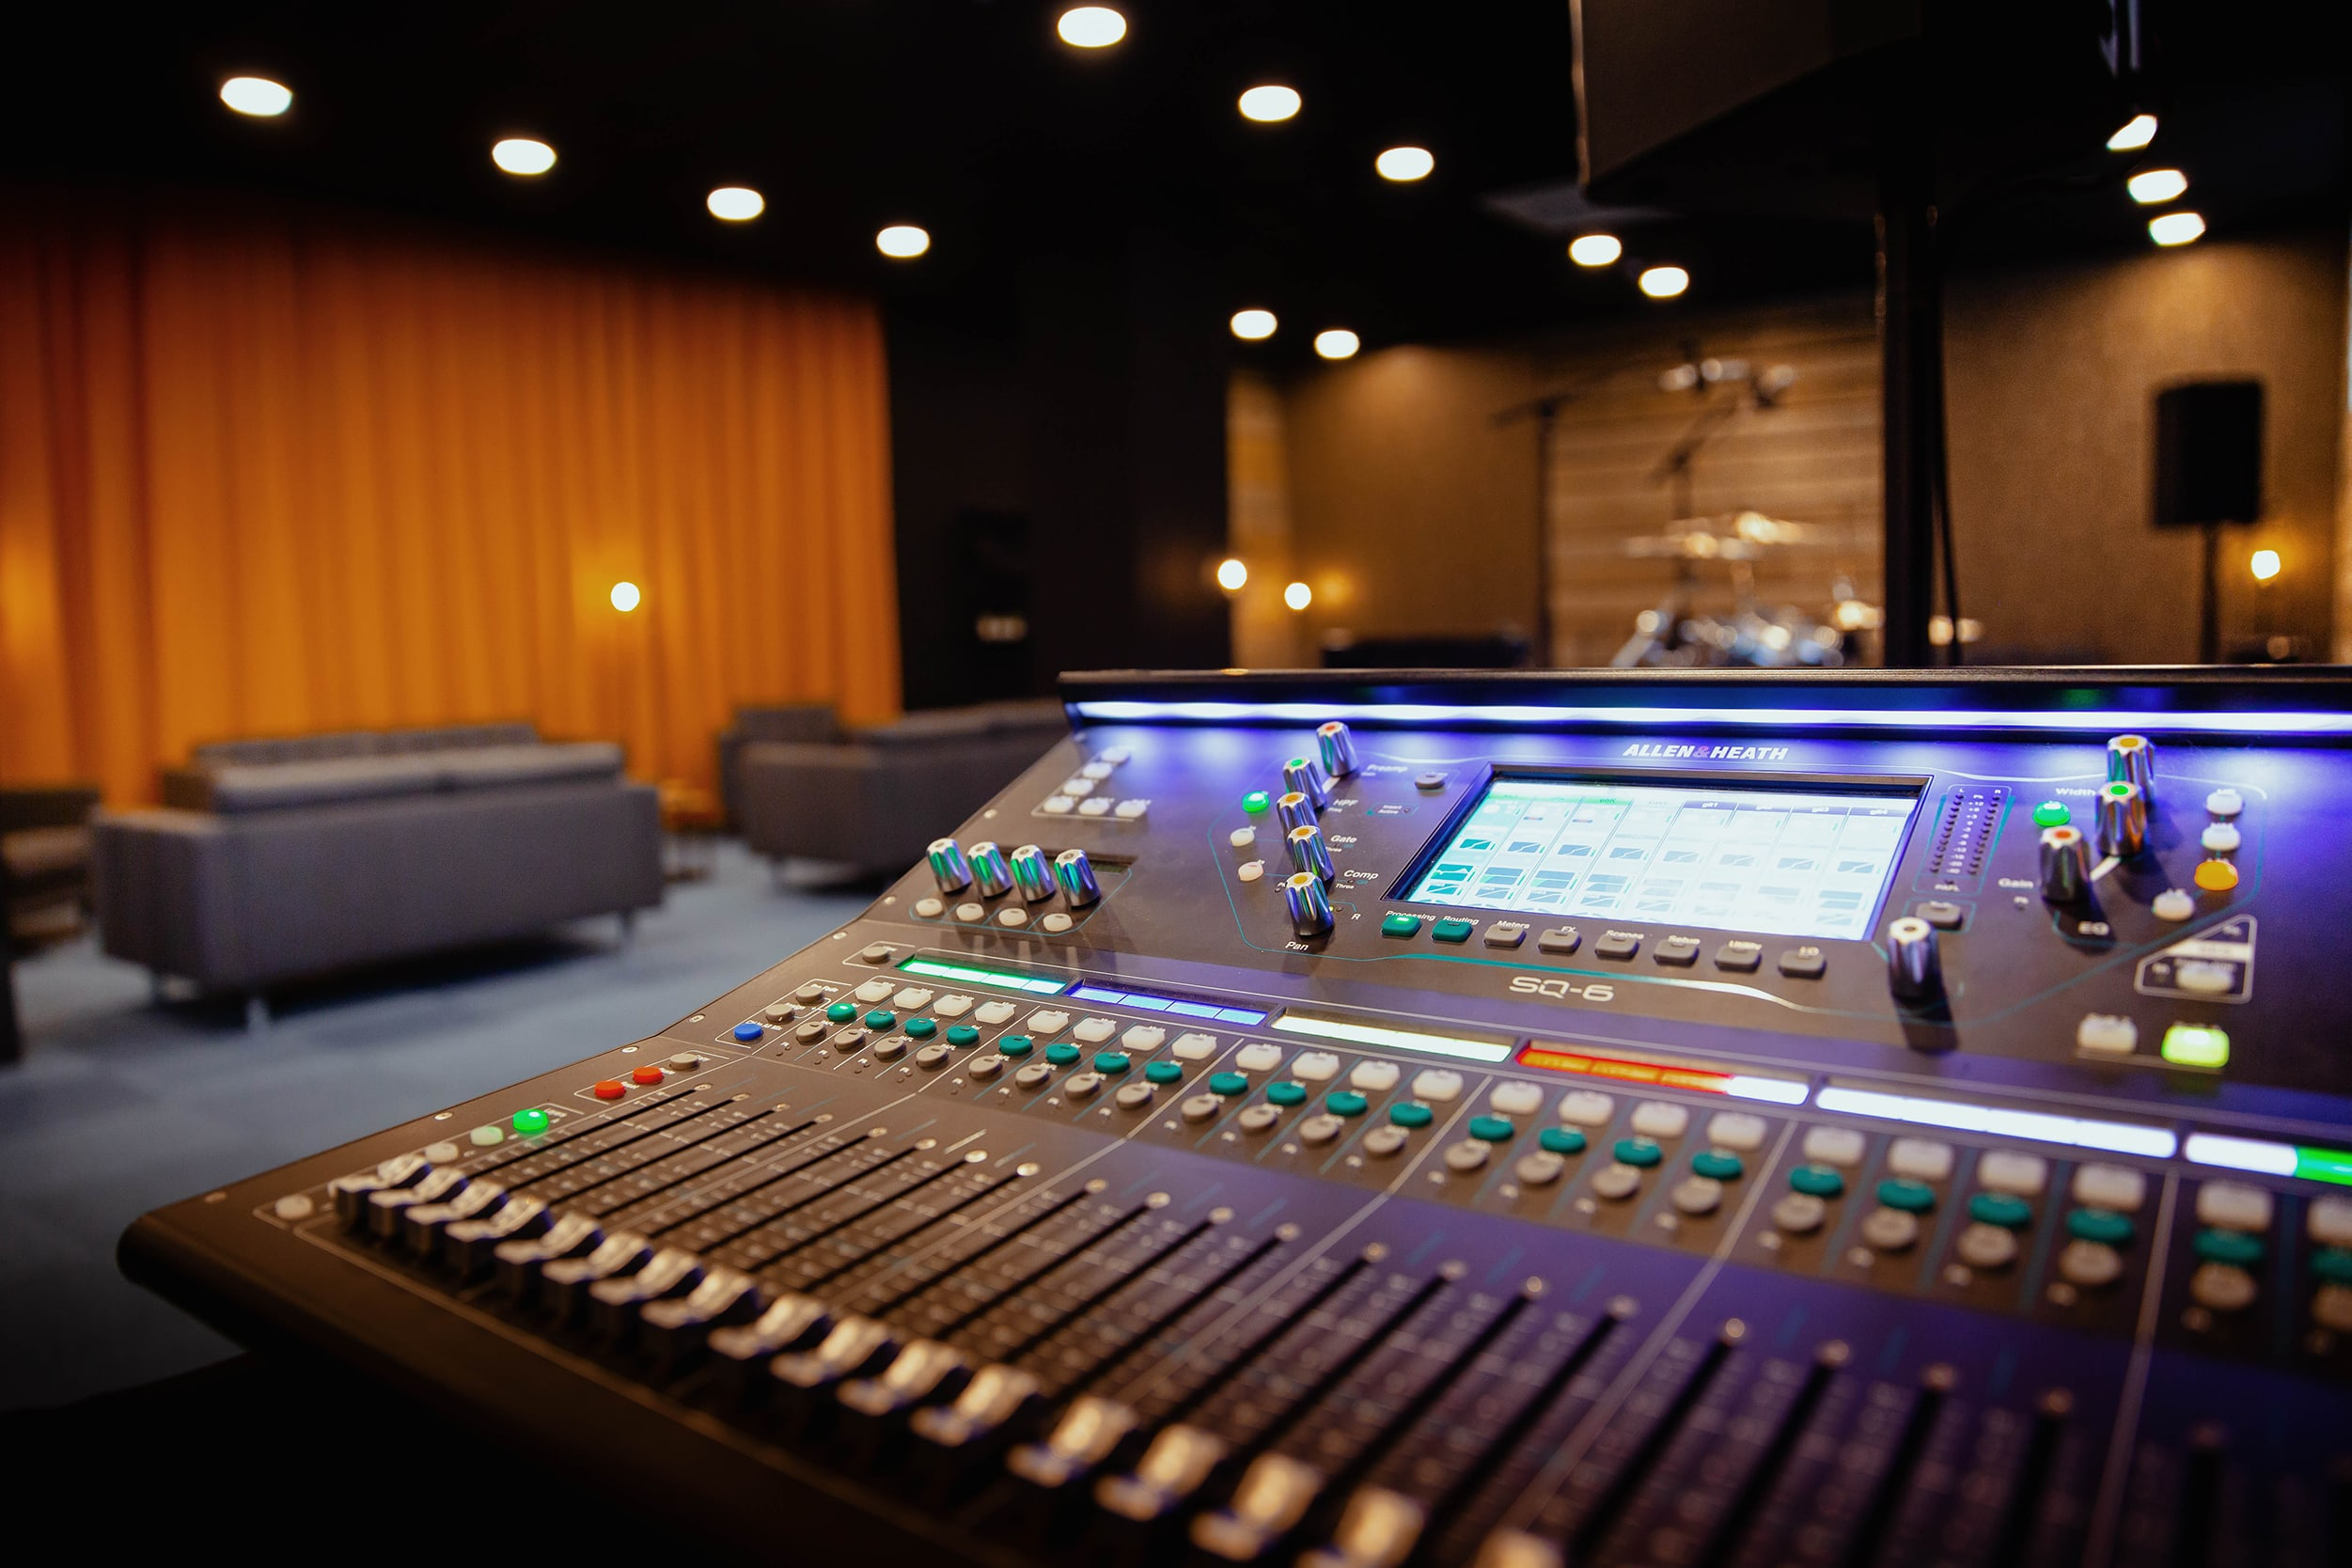 Allen & Heath Is The Primary Choice For Brand New High-End Rehearsal Studios Near Brussels 1